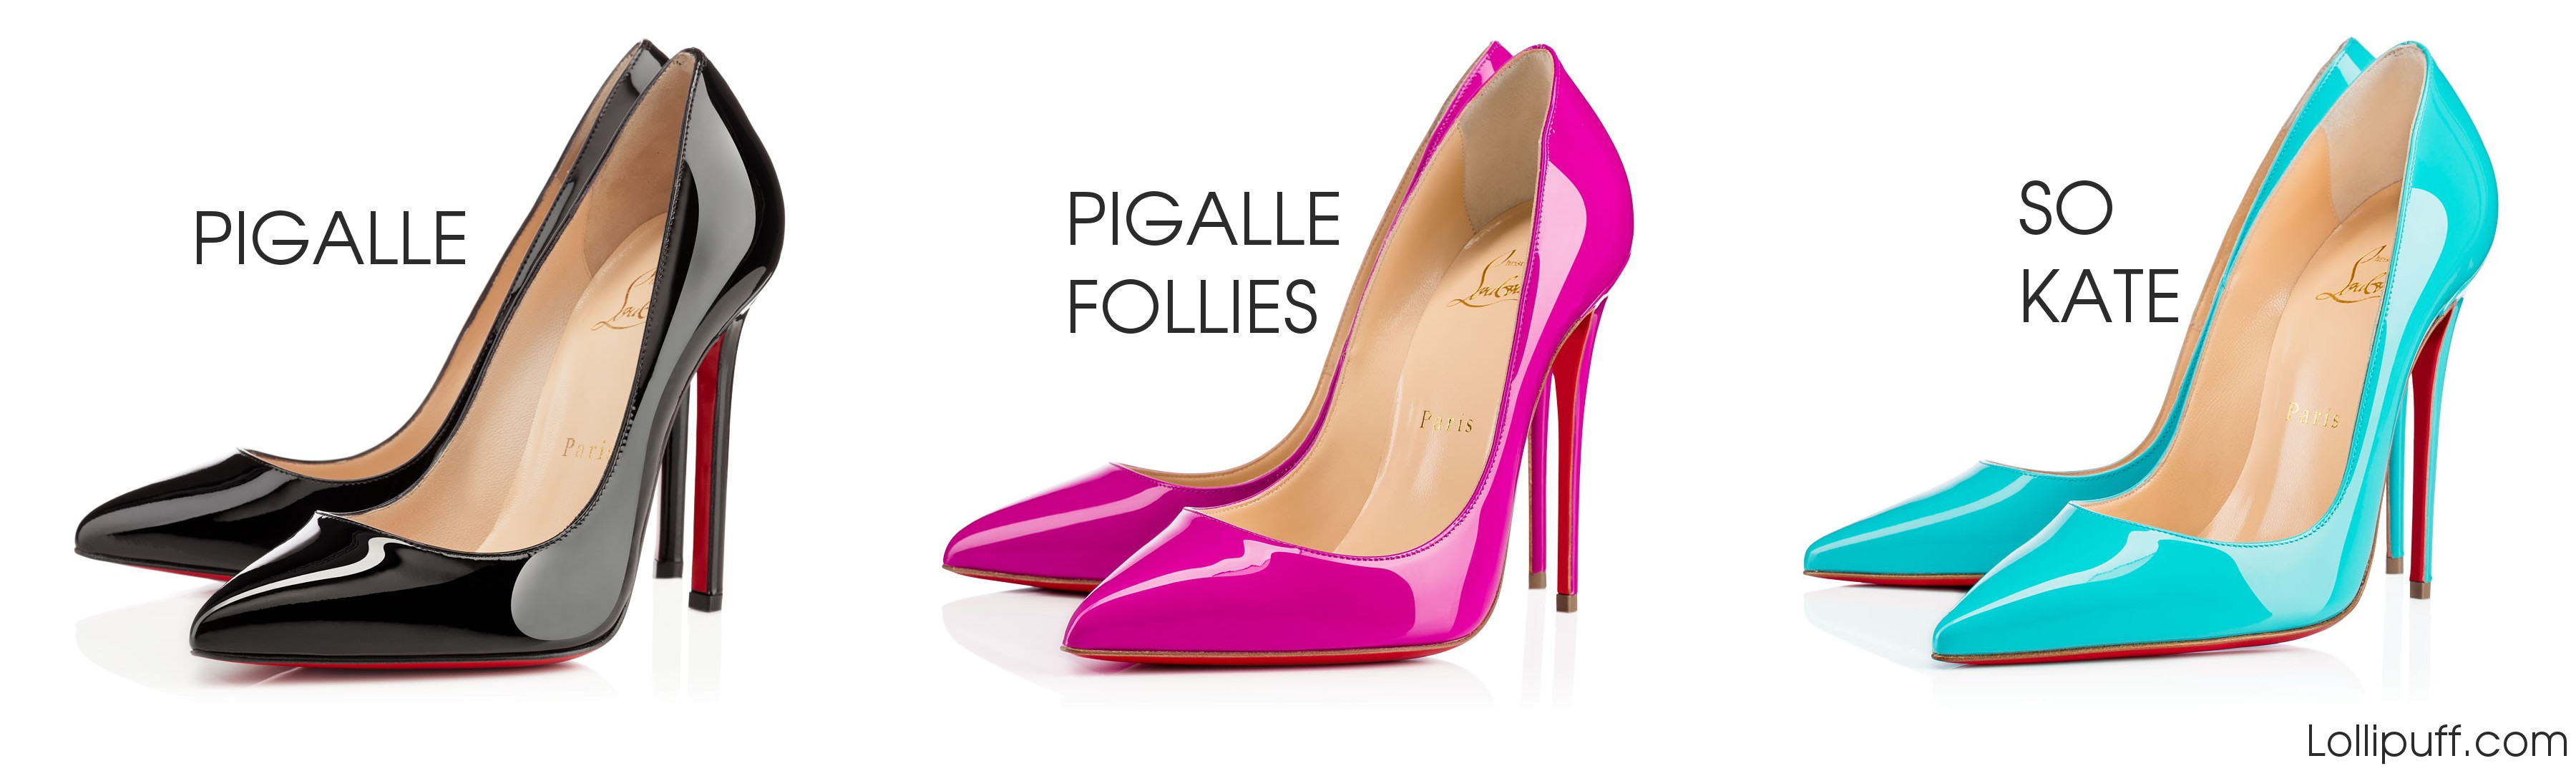 20478994462 Christian Louboutin pointed toe pumps pigalle follies so kate comparison